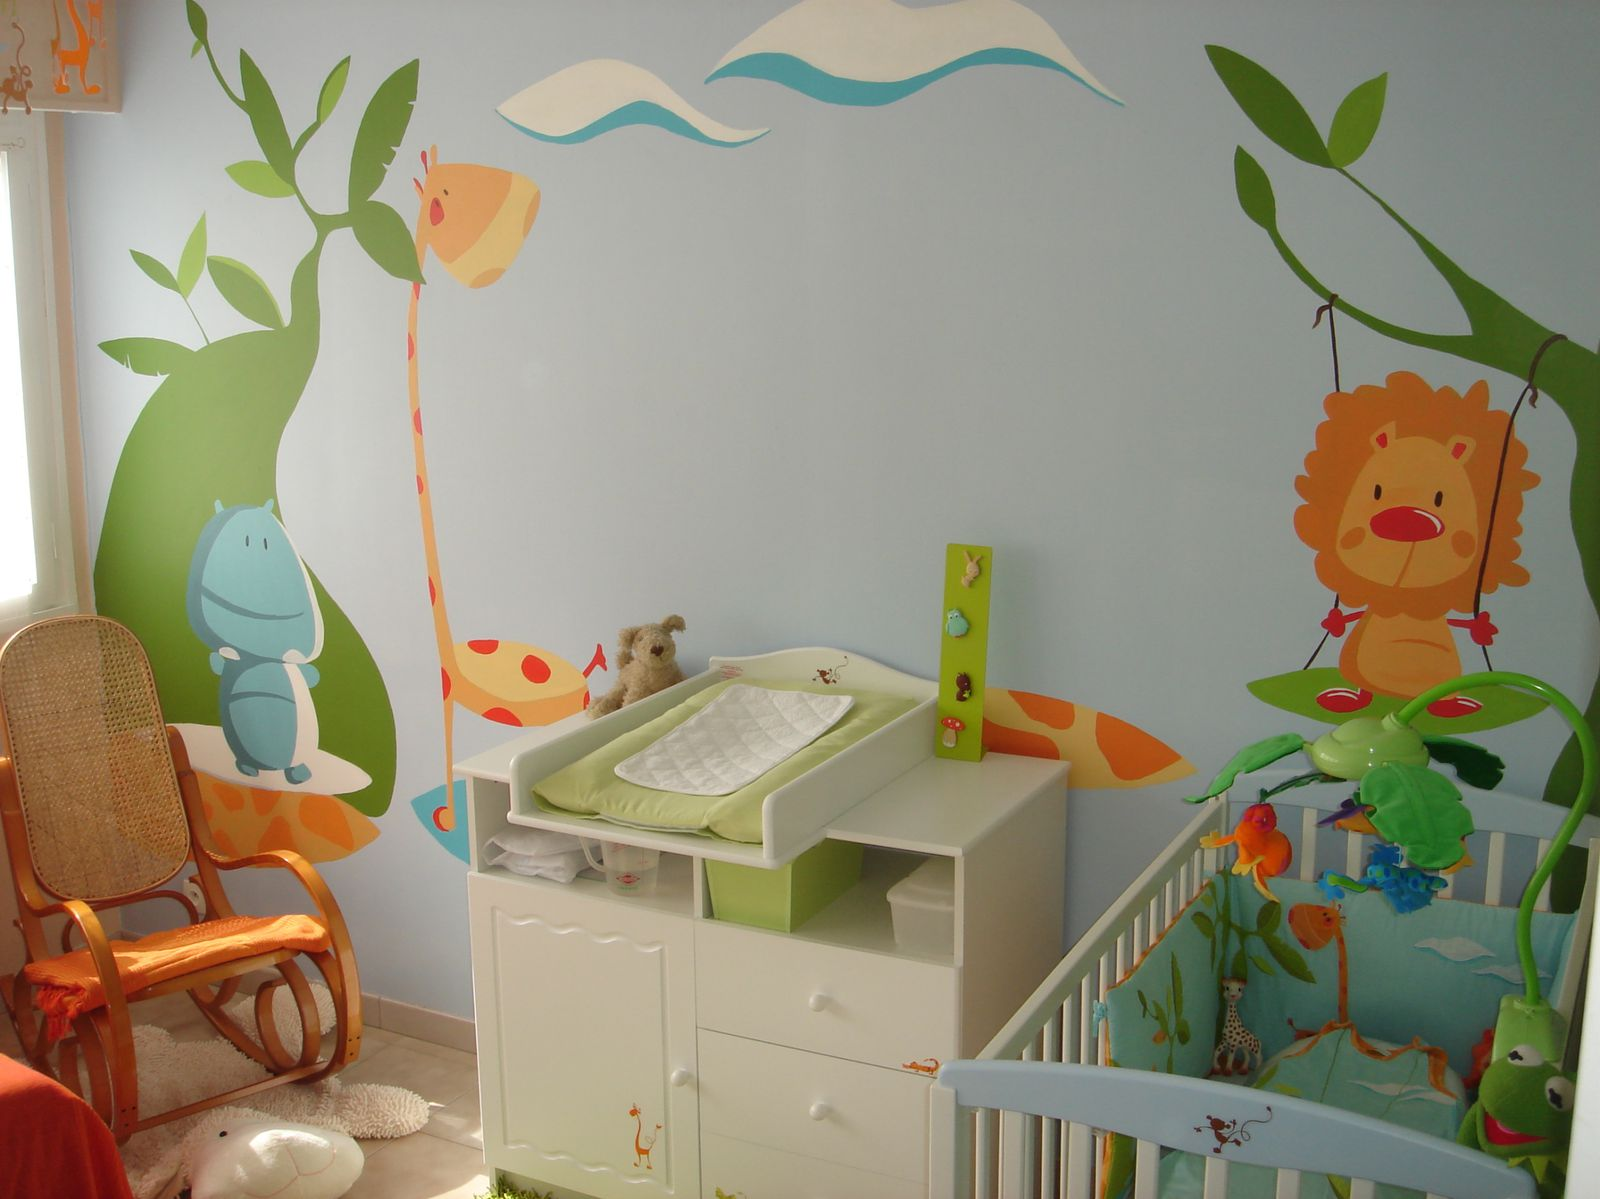 D co de chambre b b jank artiste peintre decorateur - Decoration chambre bebe jungle ...